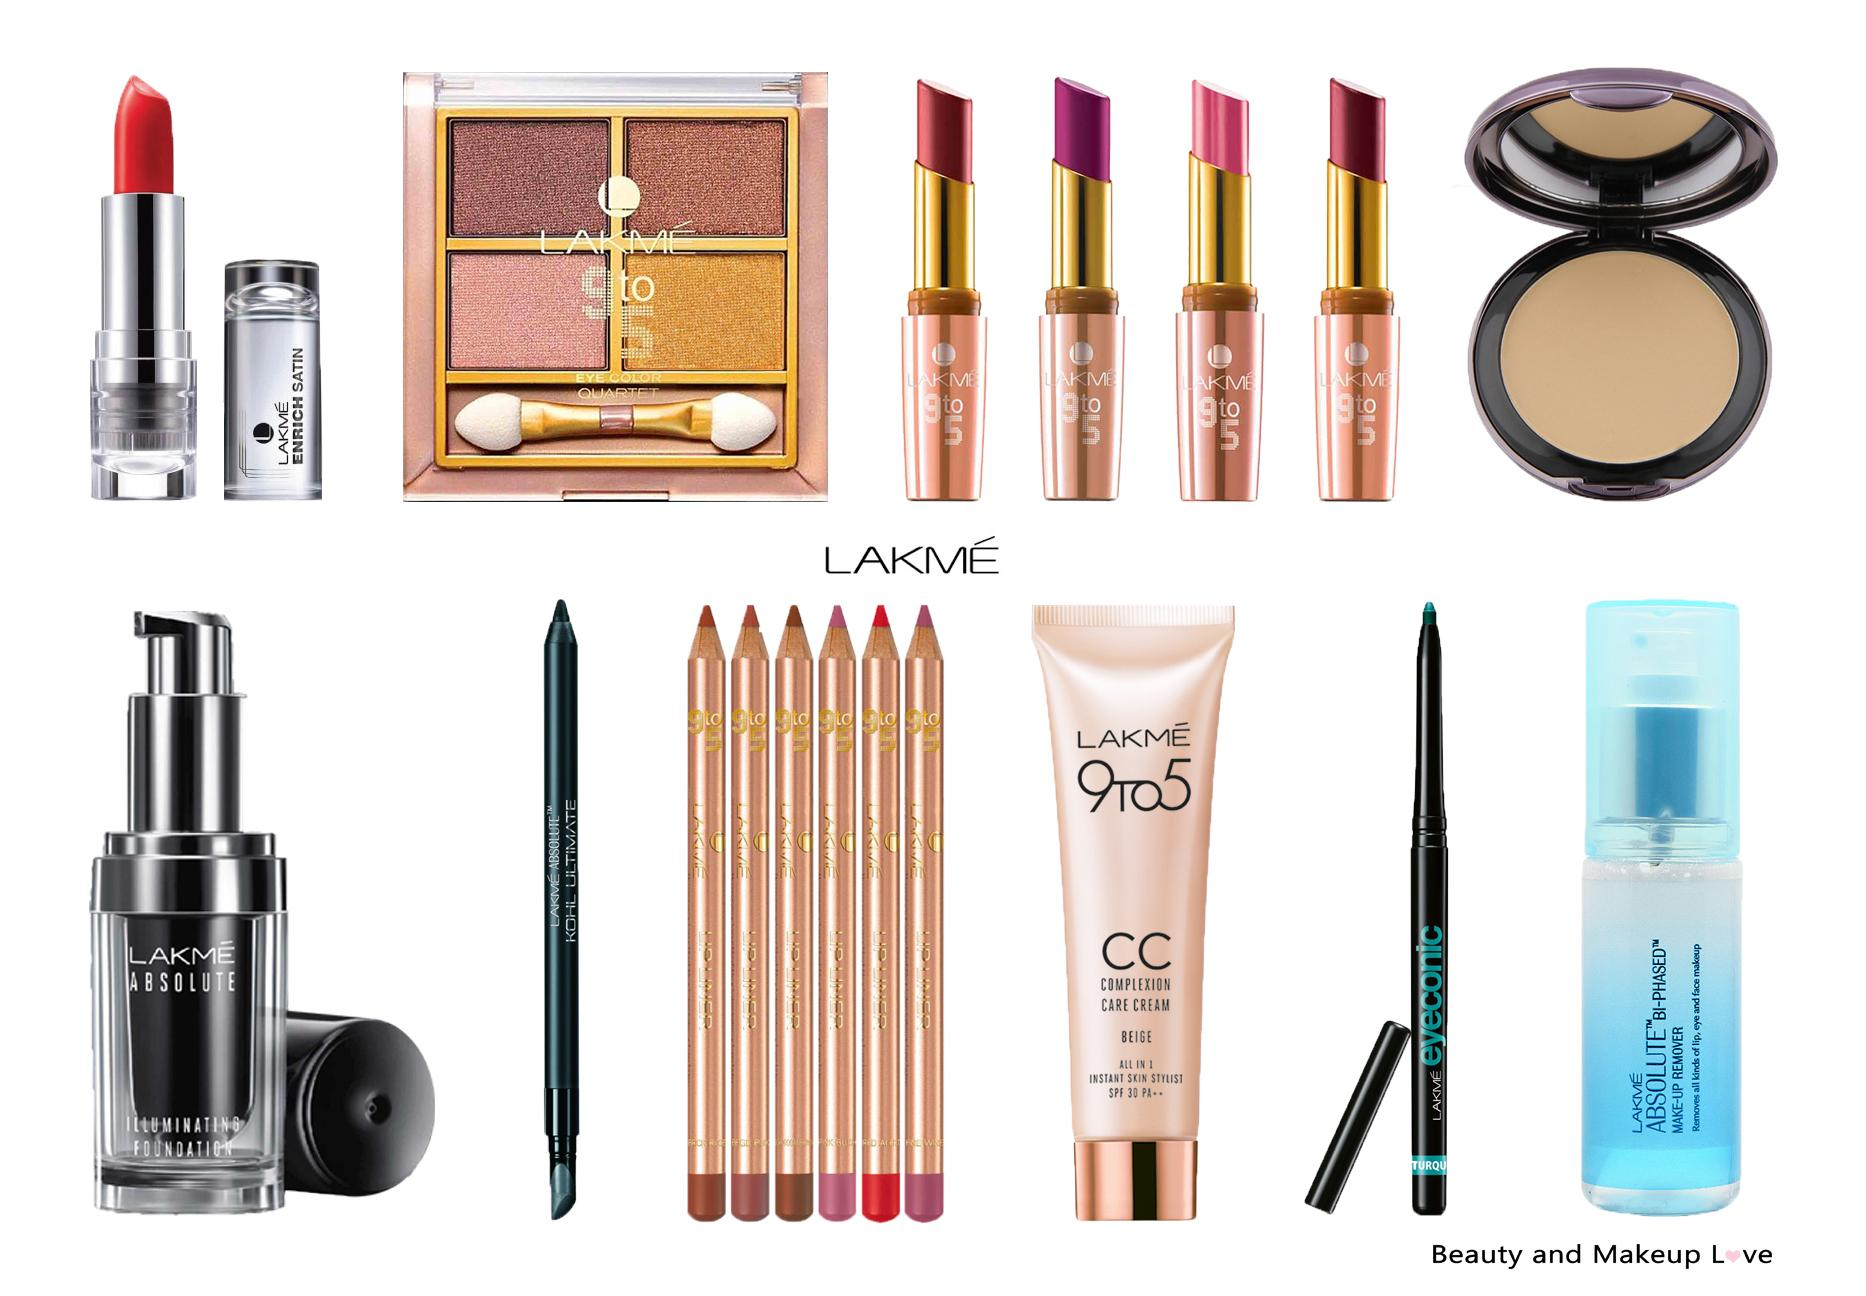 Top 20 Lakme Makeup Products In India Mini Reviews & Prices